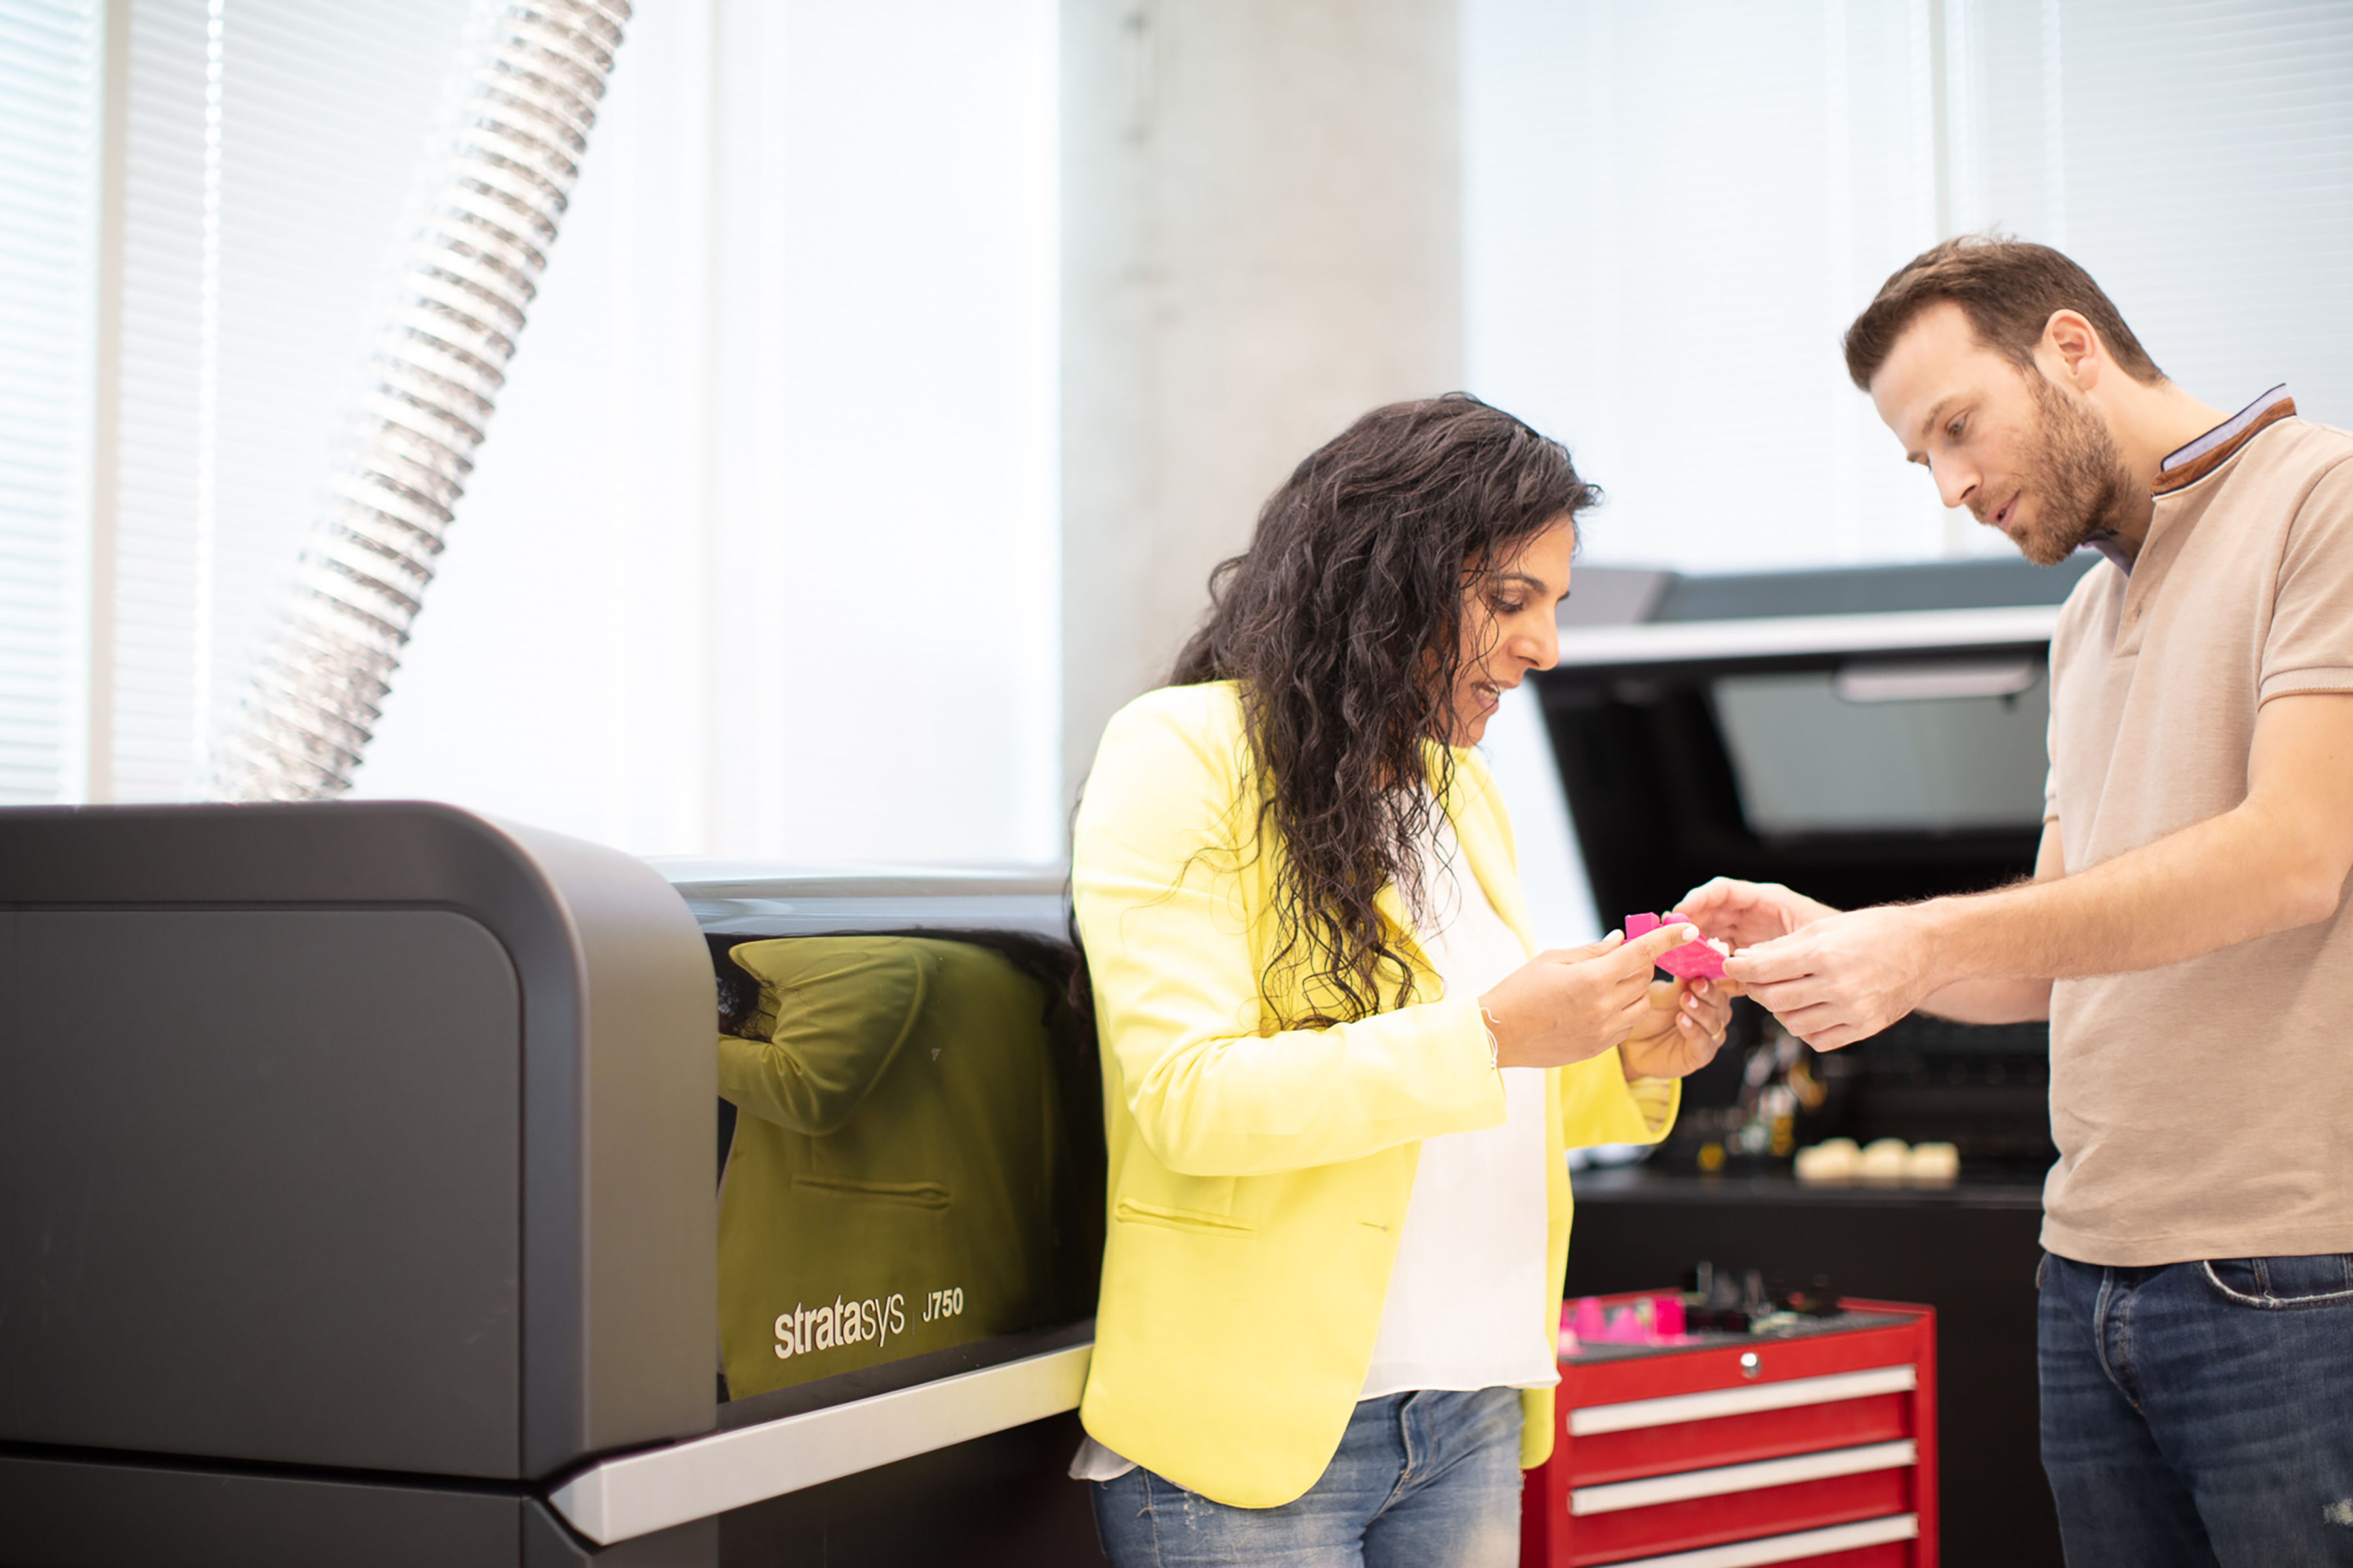 Stratasys launches the J750™ Digital Anatomy™ 3D Printer